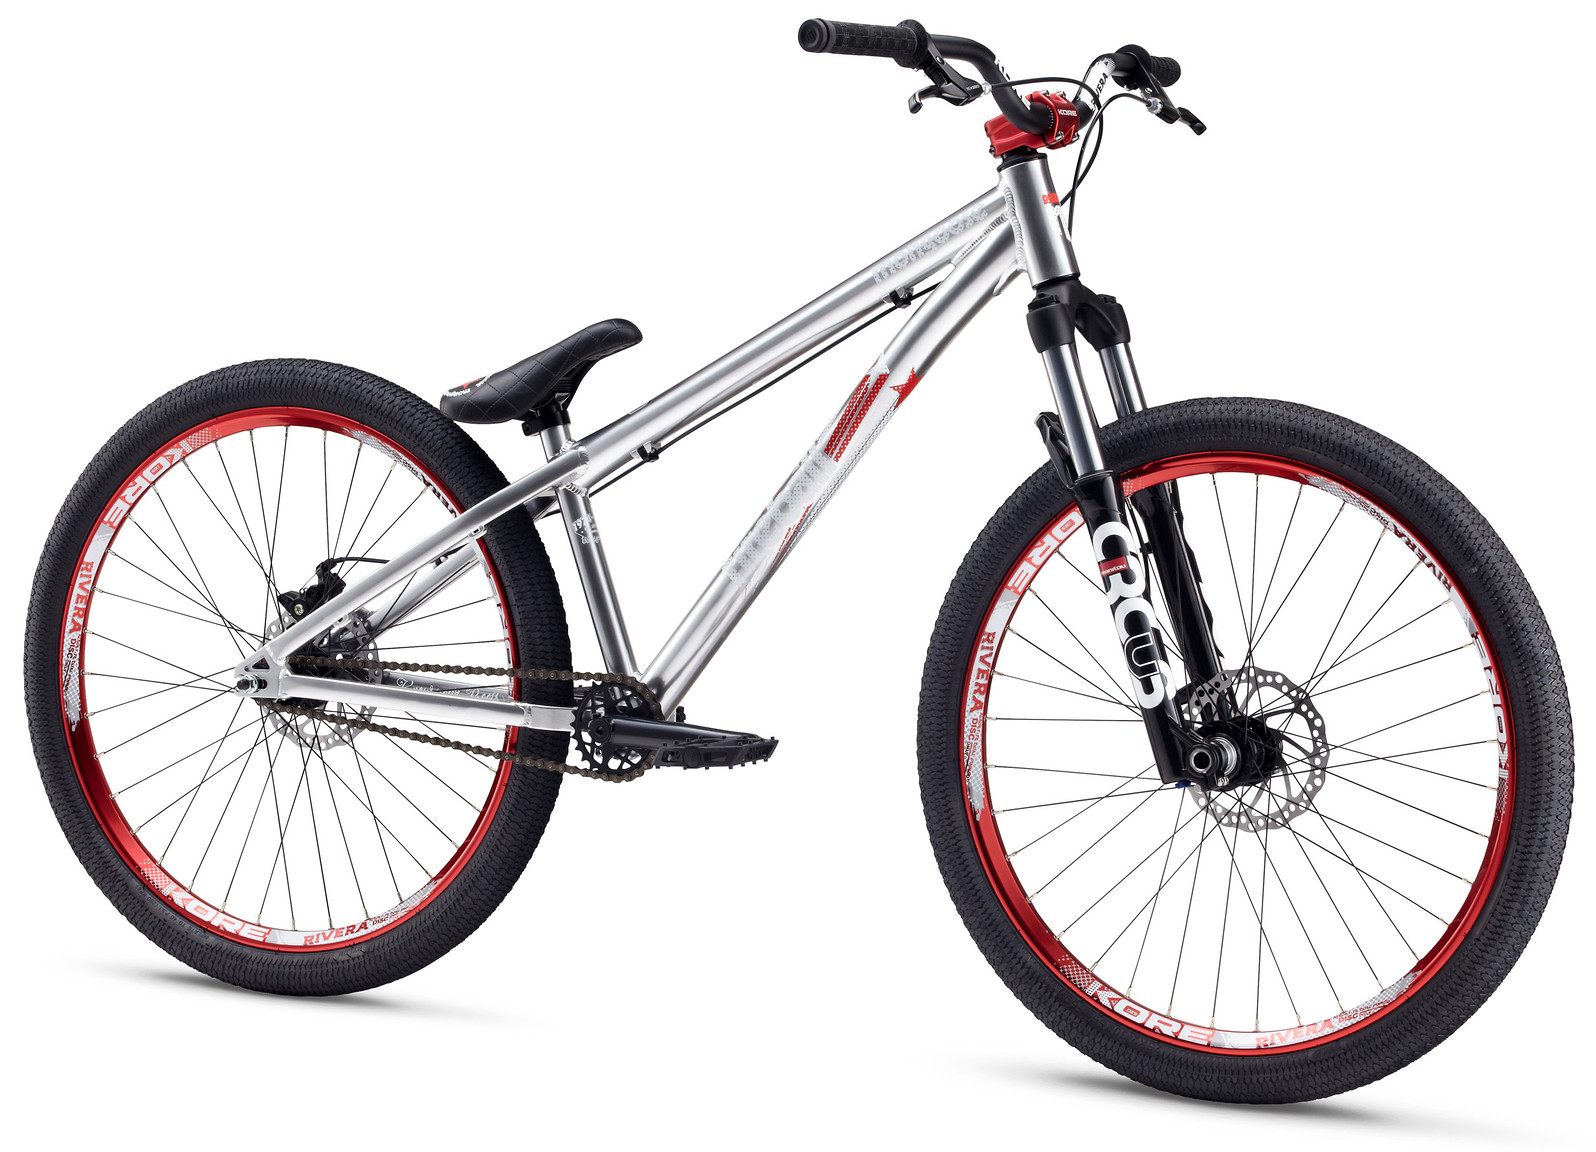 2014 Mongoose Fireball 26 SS Bike